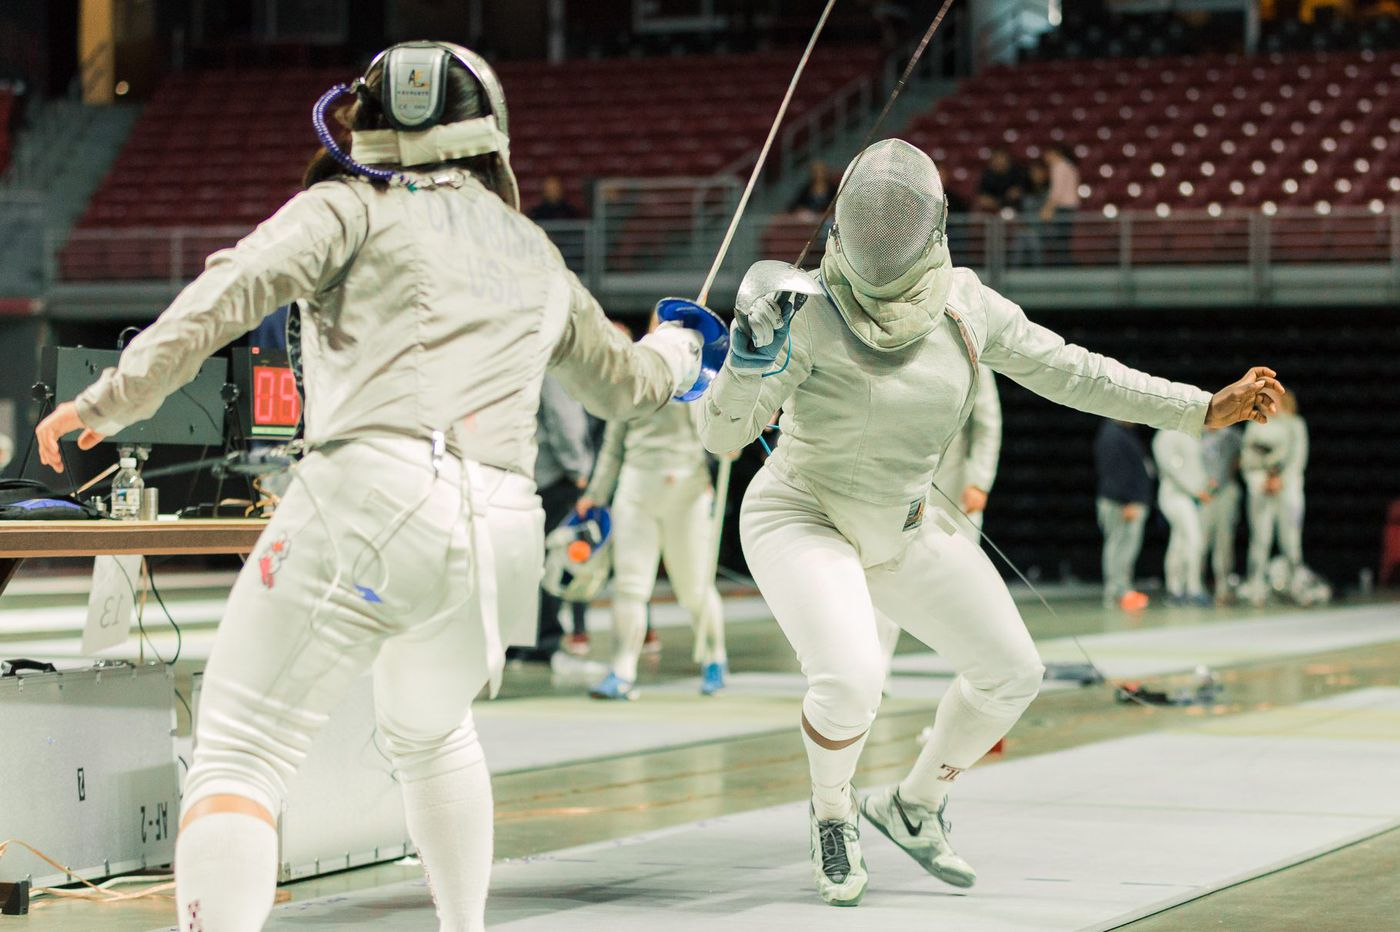 Temple fencer Blessing Olaode gears up for international competition